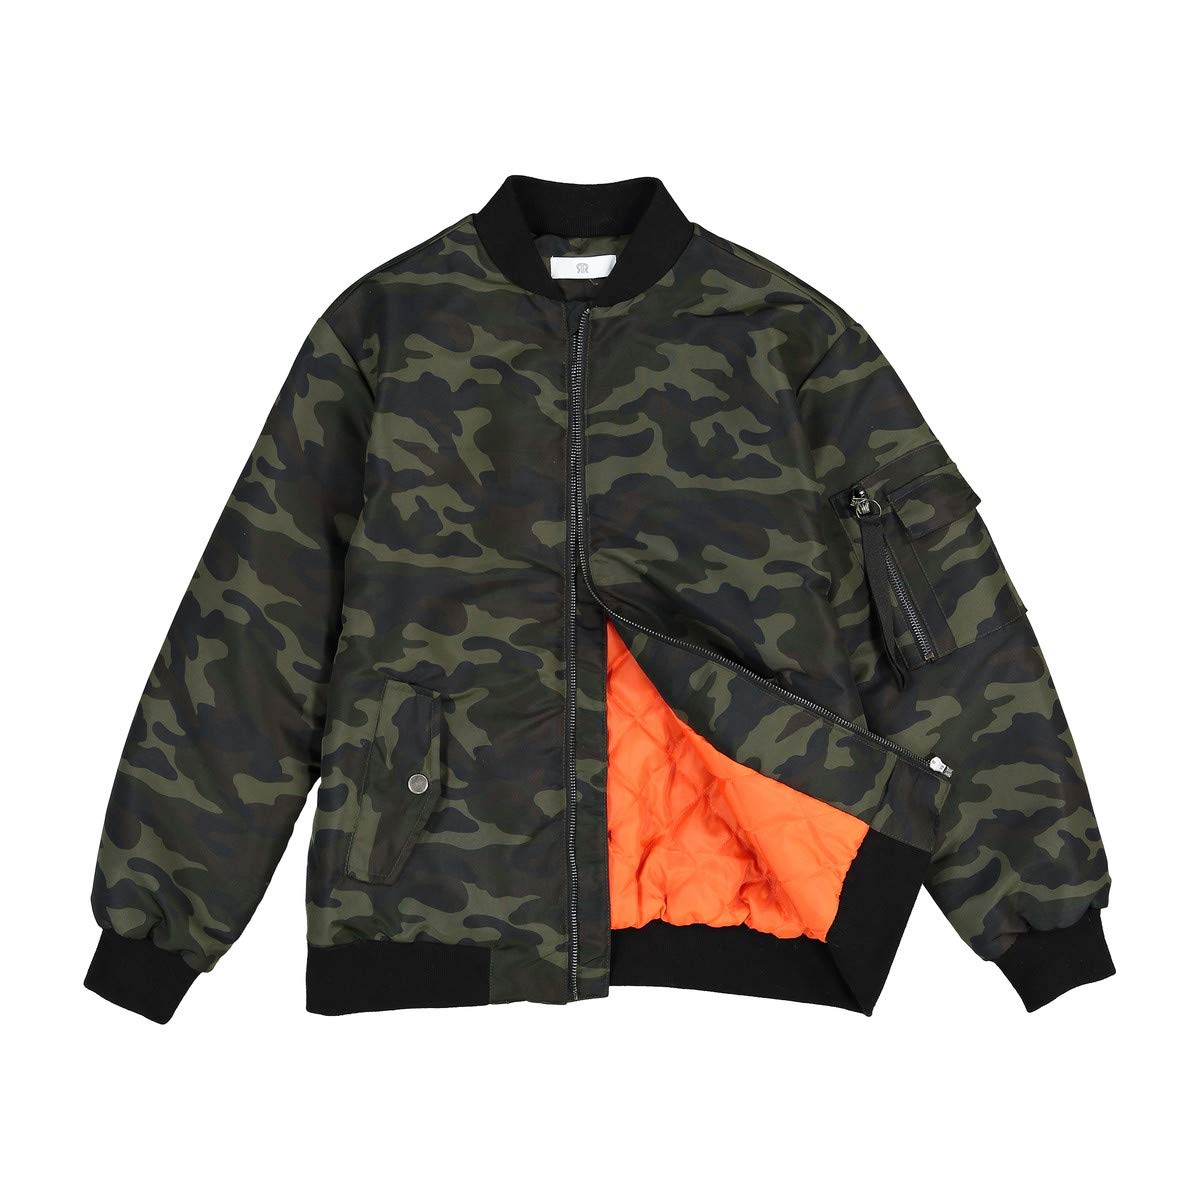 La Redoute Collections Big Boys Camouflage Bomber Jacket, 10-16 Years Green Size 14 Years - 63 in. by La Redoute (Image #3)